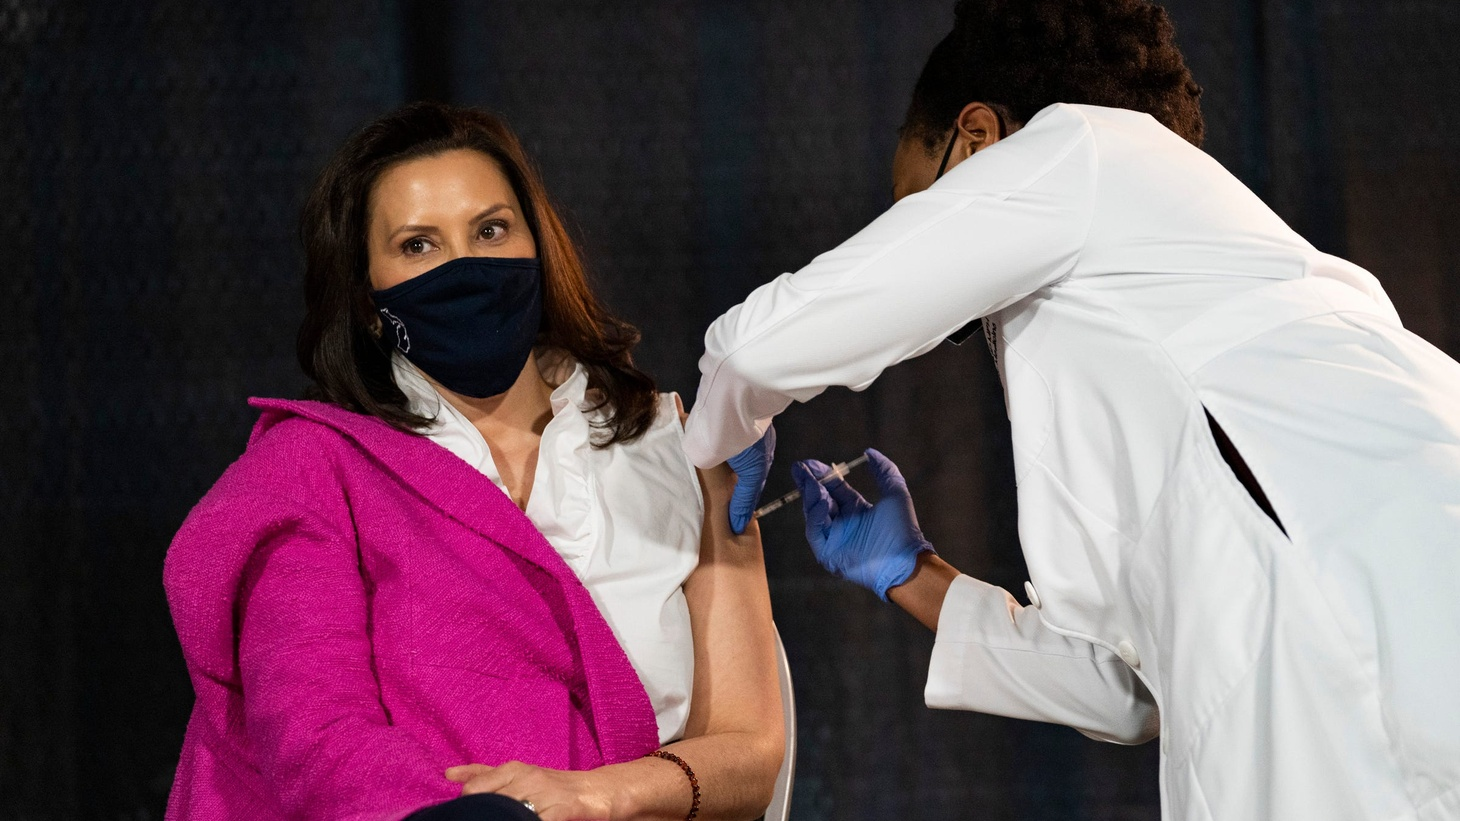 Governor Gretchen Whitmer, in an attempt to encourage young adults, gets her first COVID-19 vaccine Tuesday, Apr. 6, 2021 at Ford Field, administered by Michigan Chief Medical Executive Dr. Joneigh S. Khaldun.